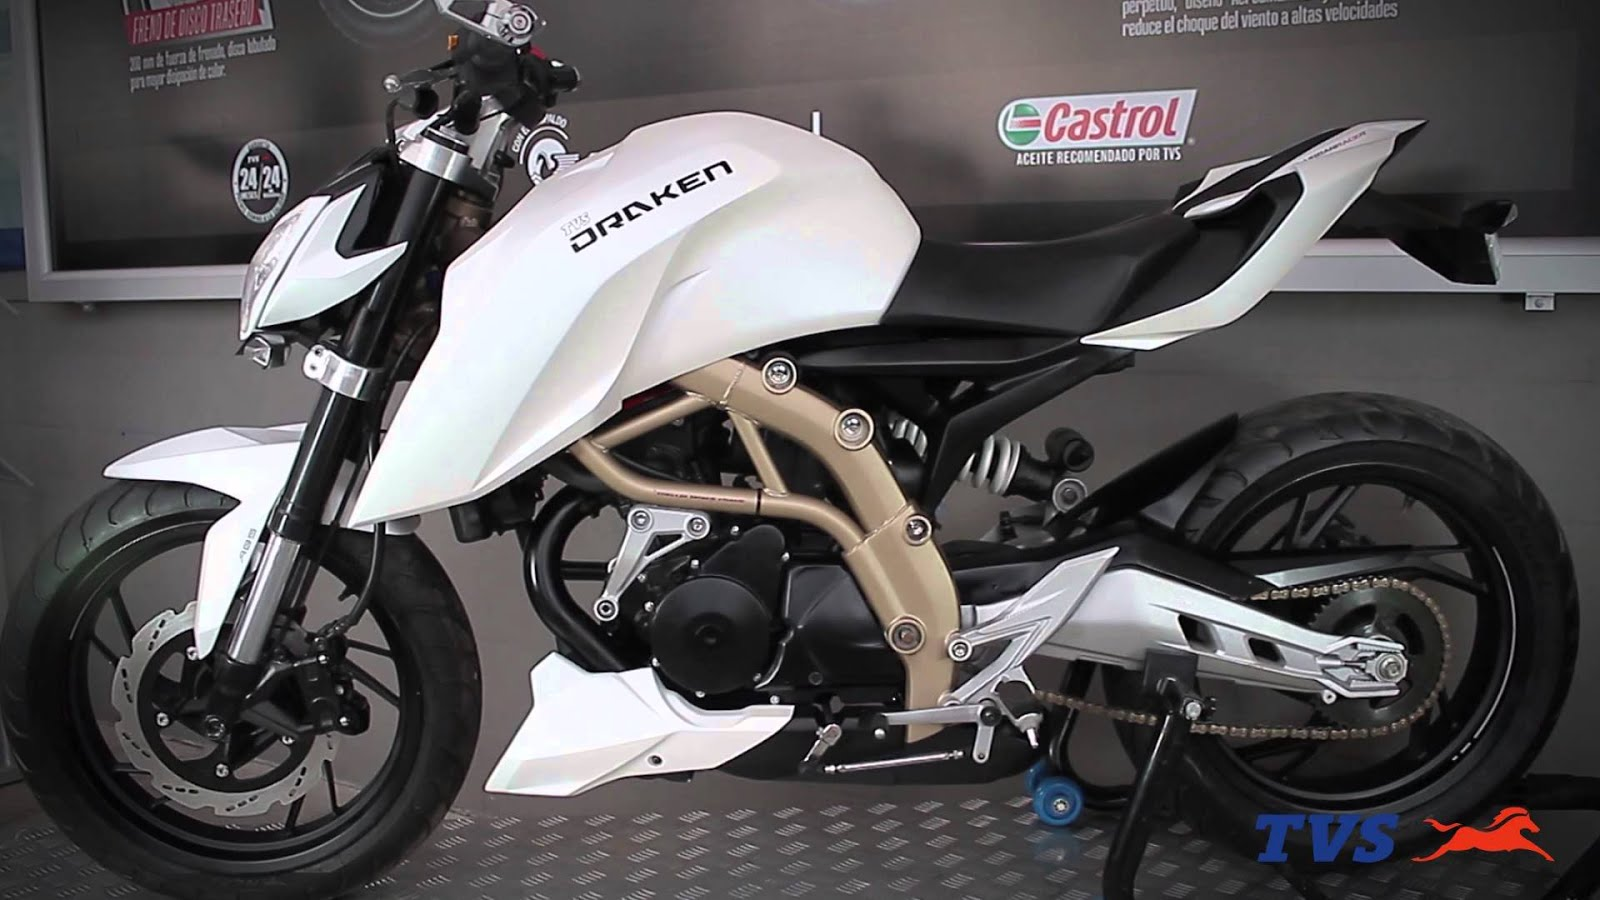 tvs draken price in india, launch date, mileage, specification